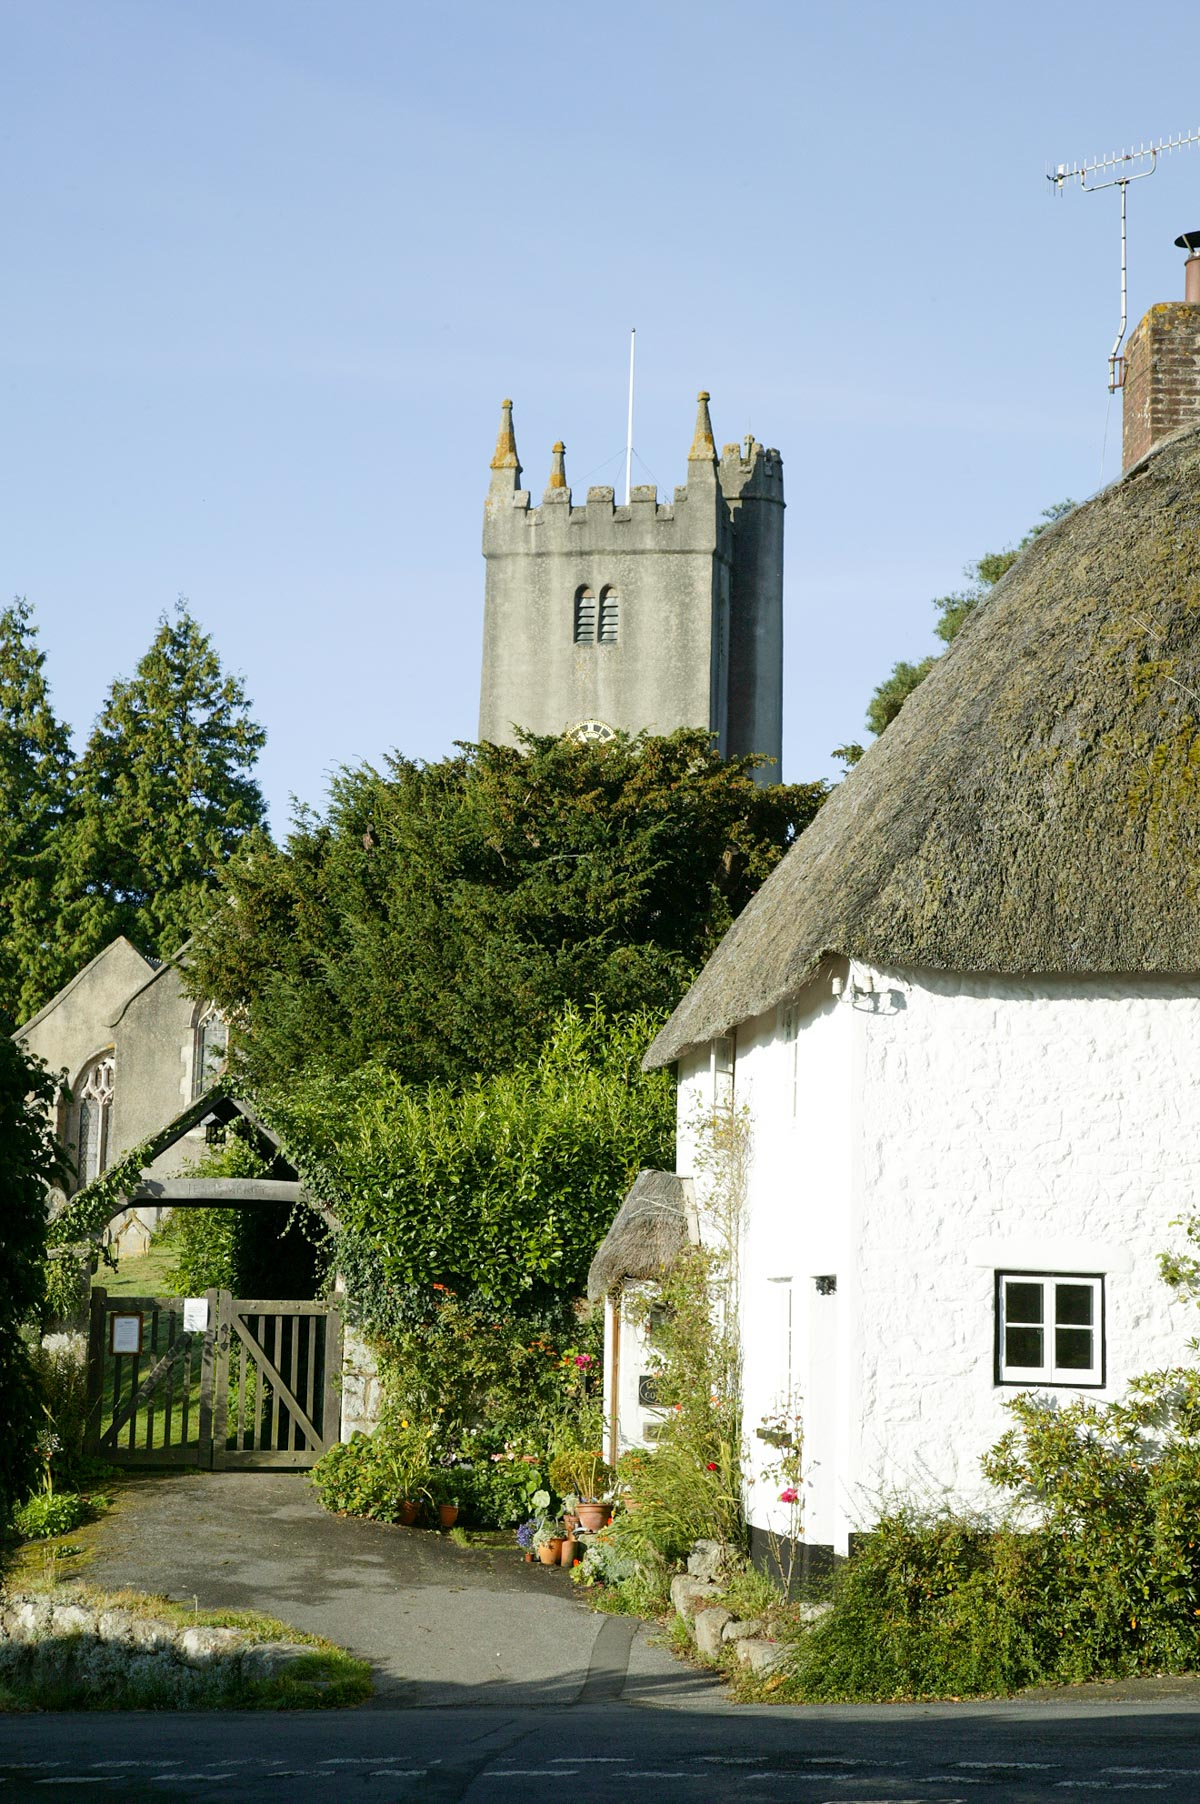 St John's Church, in our village, is a popular wedding venue